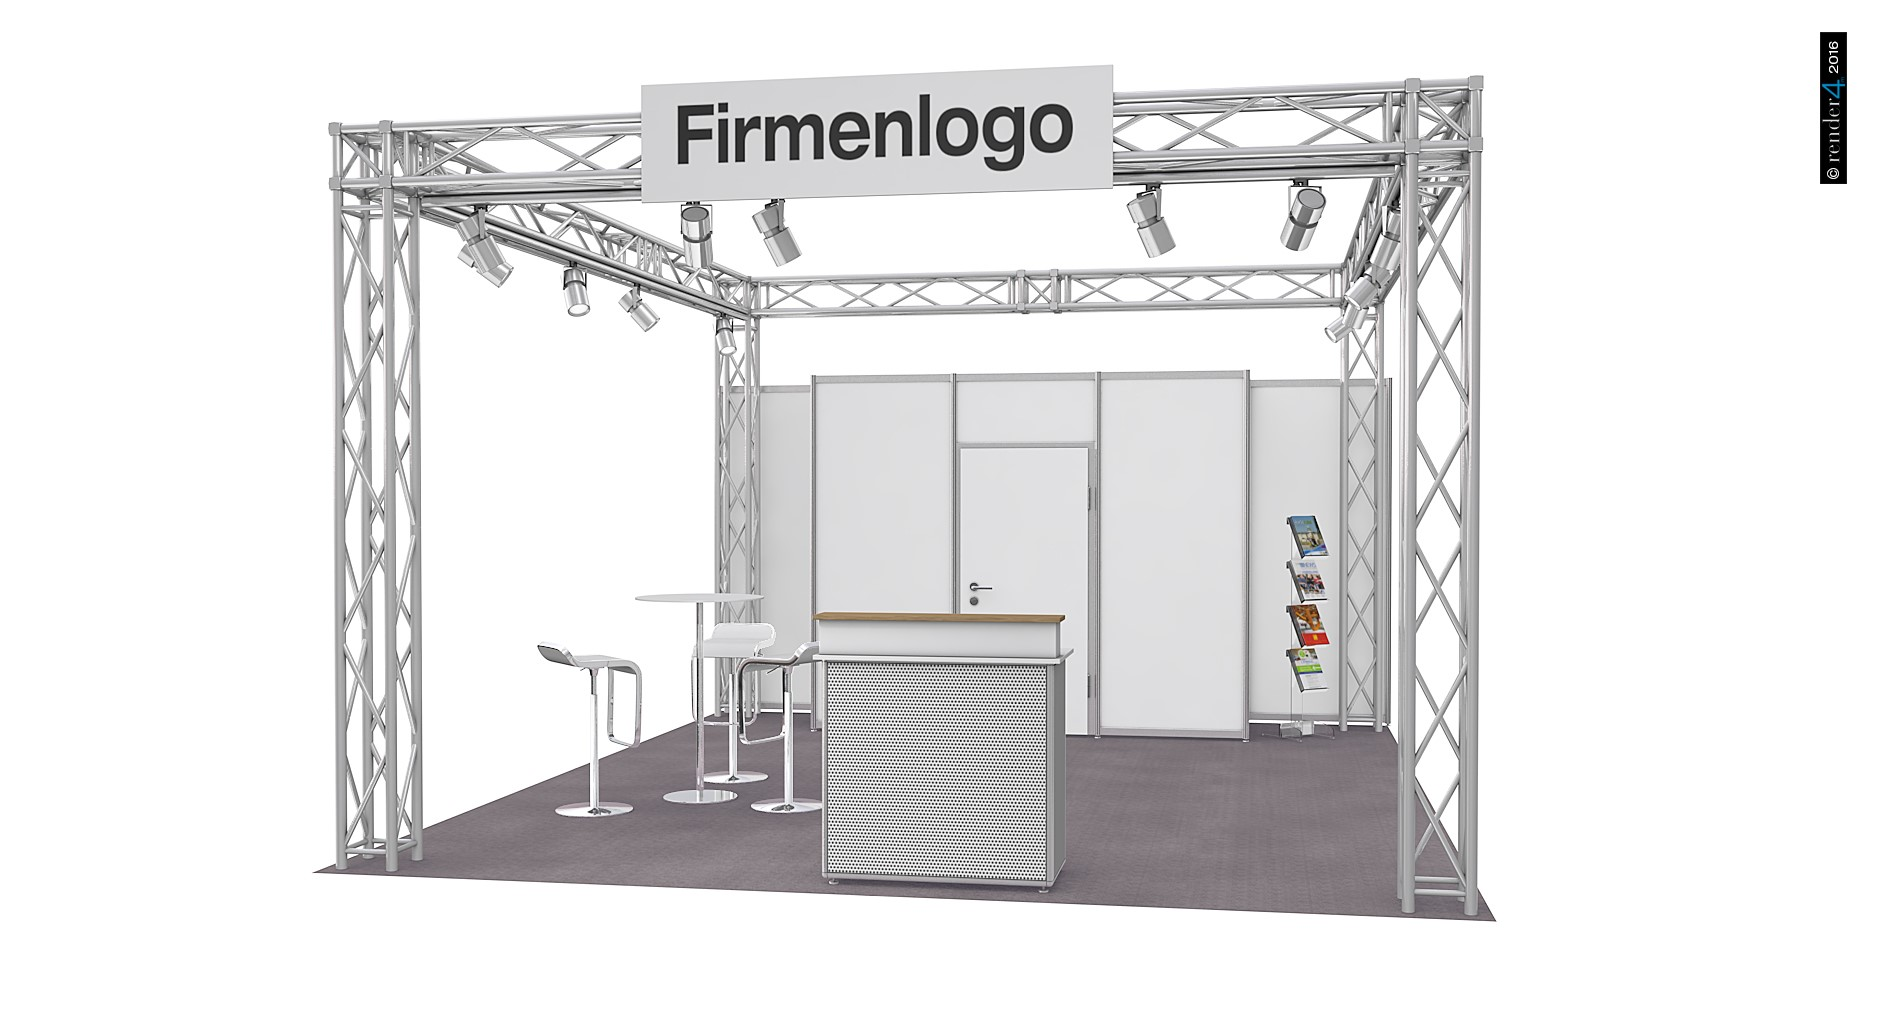 Exhibition booth - Basis booths - Event